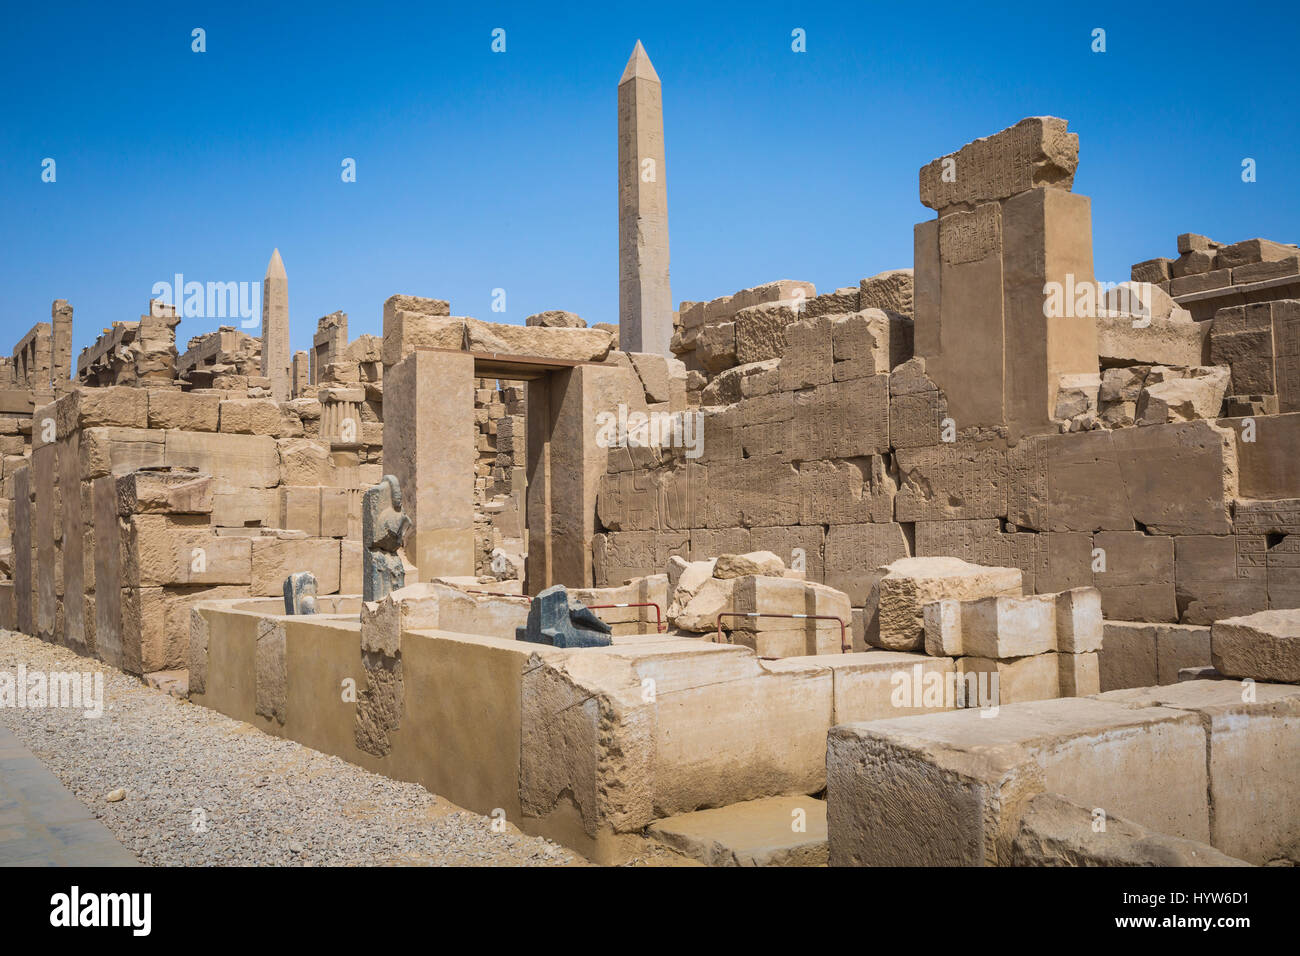 Ancient ruins of Karnak temple in Luxor. Egypt - Stock Image